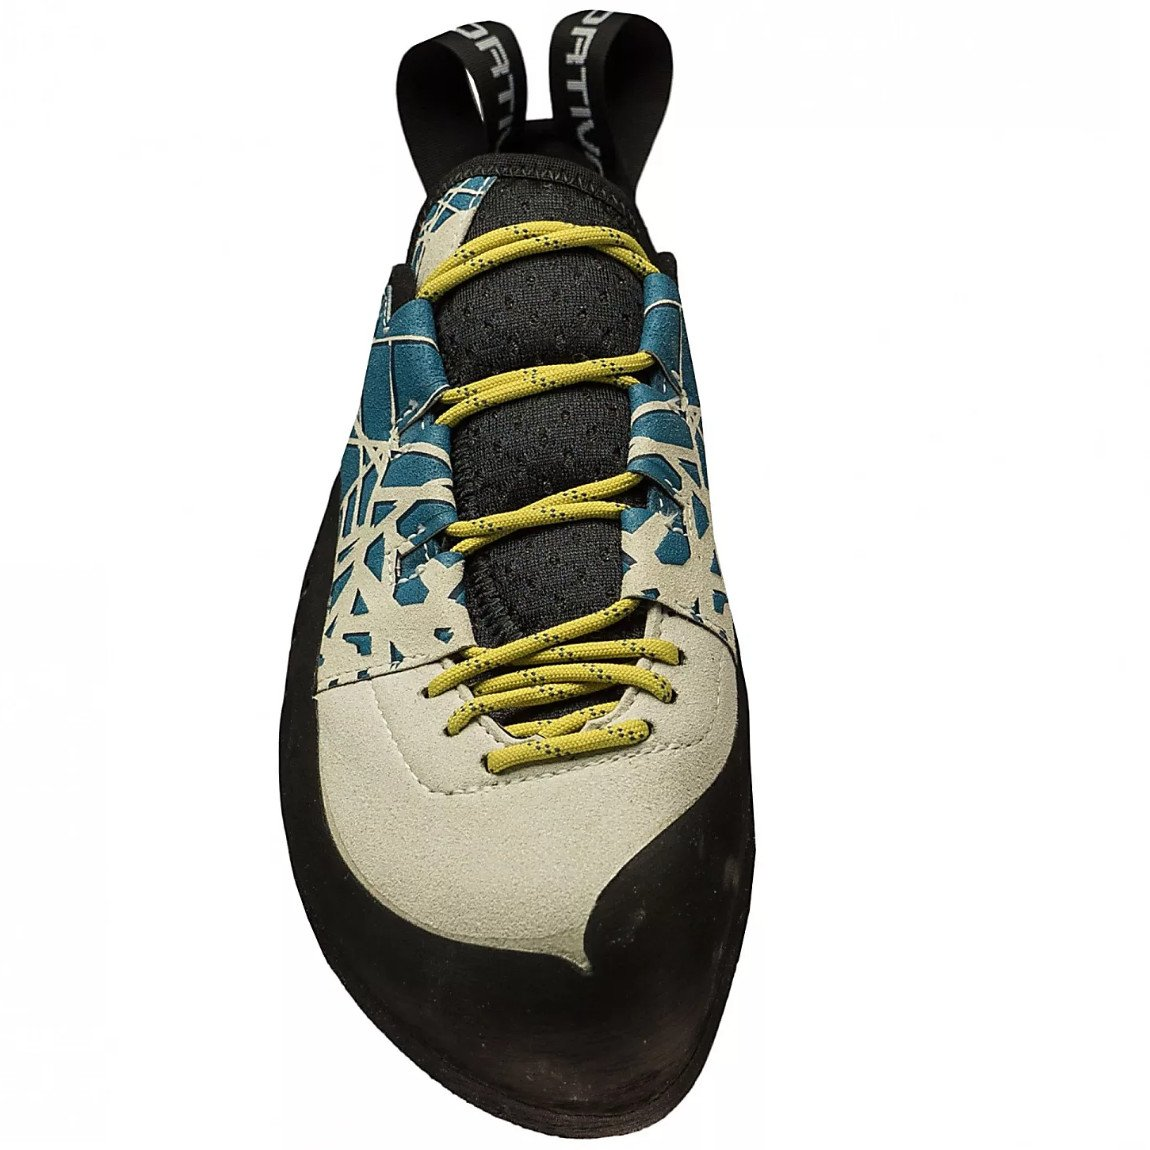 La Sportiva Kataki climbing shoe, front view showing lace detail